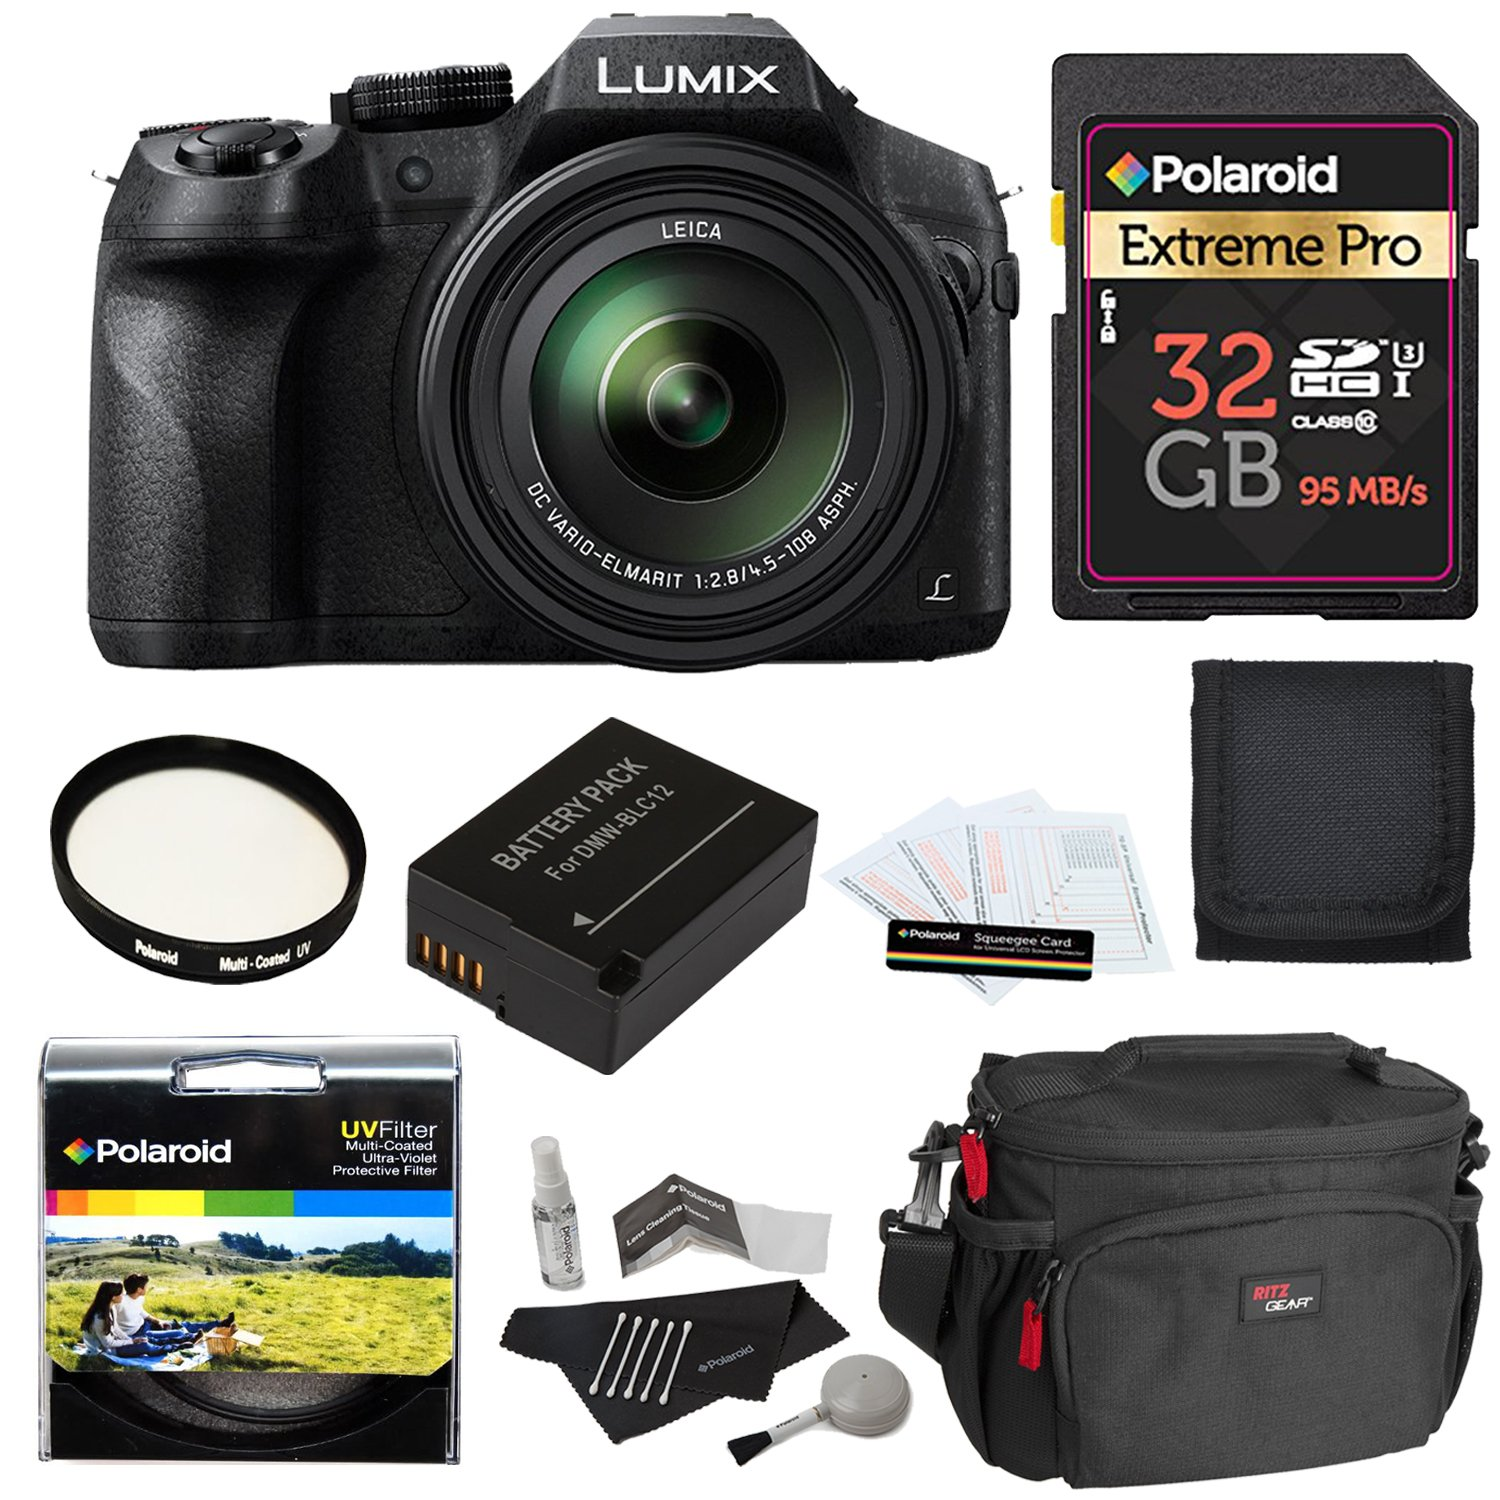 Panasonic LUMIX DMC FZ300 4K, Point and Shoot Camera with Leica DC Lens 24X Zoom Black + Polaroid Accessory Kit + 32GB Class 3 SD Card + Ritz Gear Bag + Spare Battery + Filter + Cleaning Kit + More